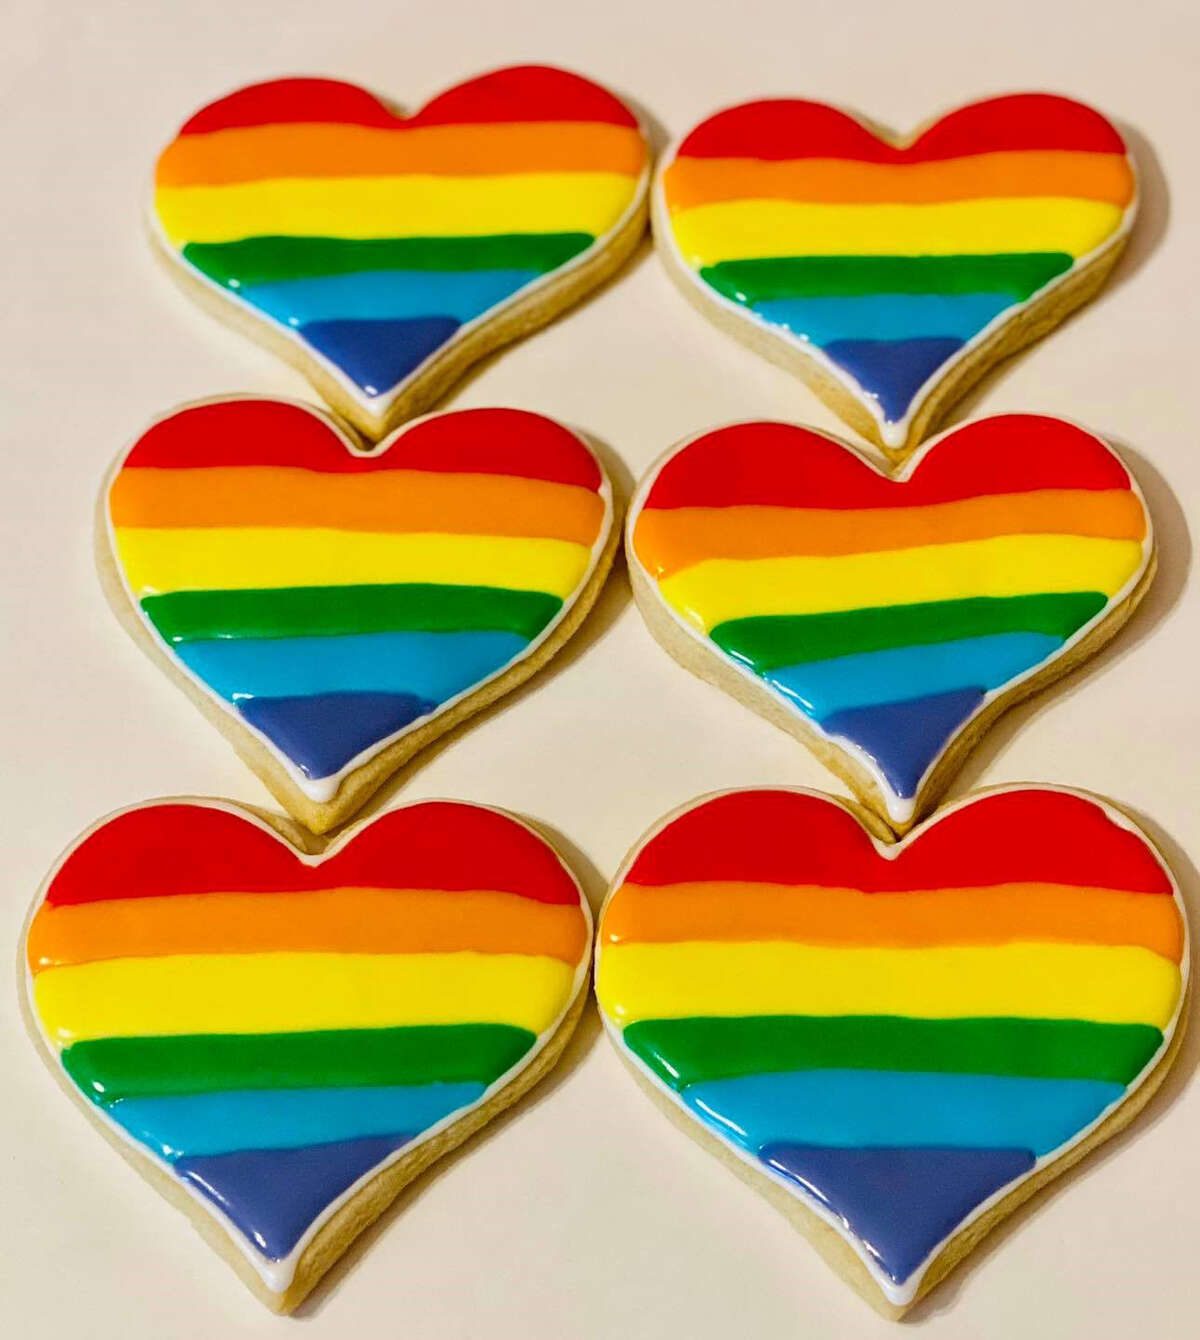 The photo of rainbow Pride cookies that was posted on Confections' Facebook page on June 2. Shortly after the bakery shared the image, it lost dozens of followers on social media and a patron canceled a large cookie order.